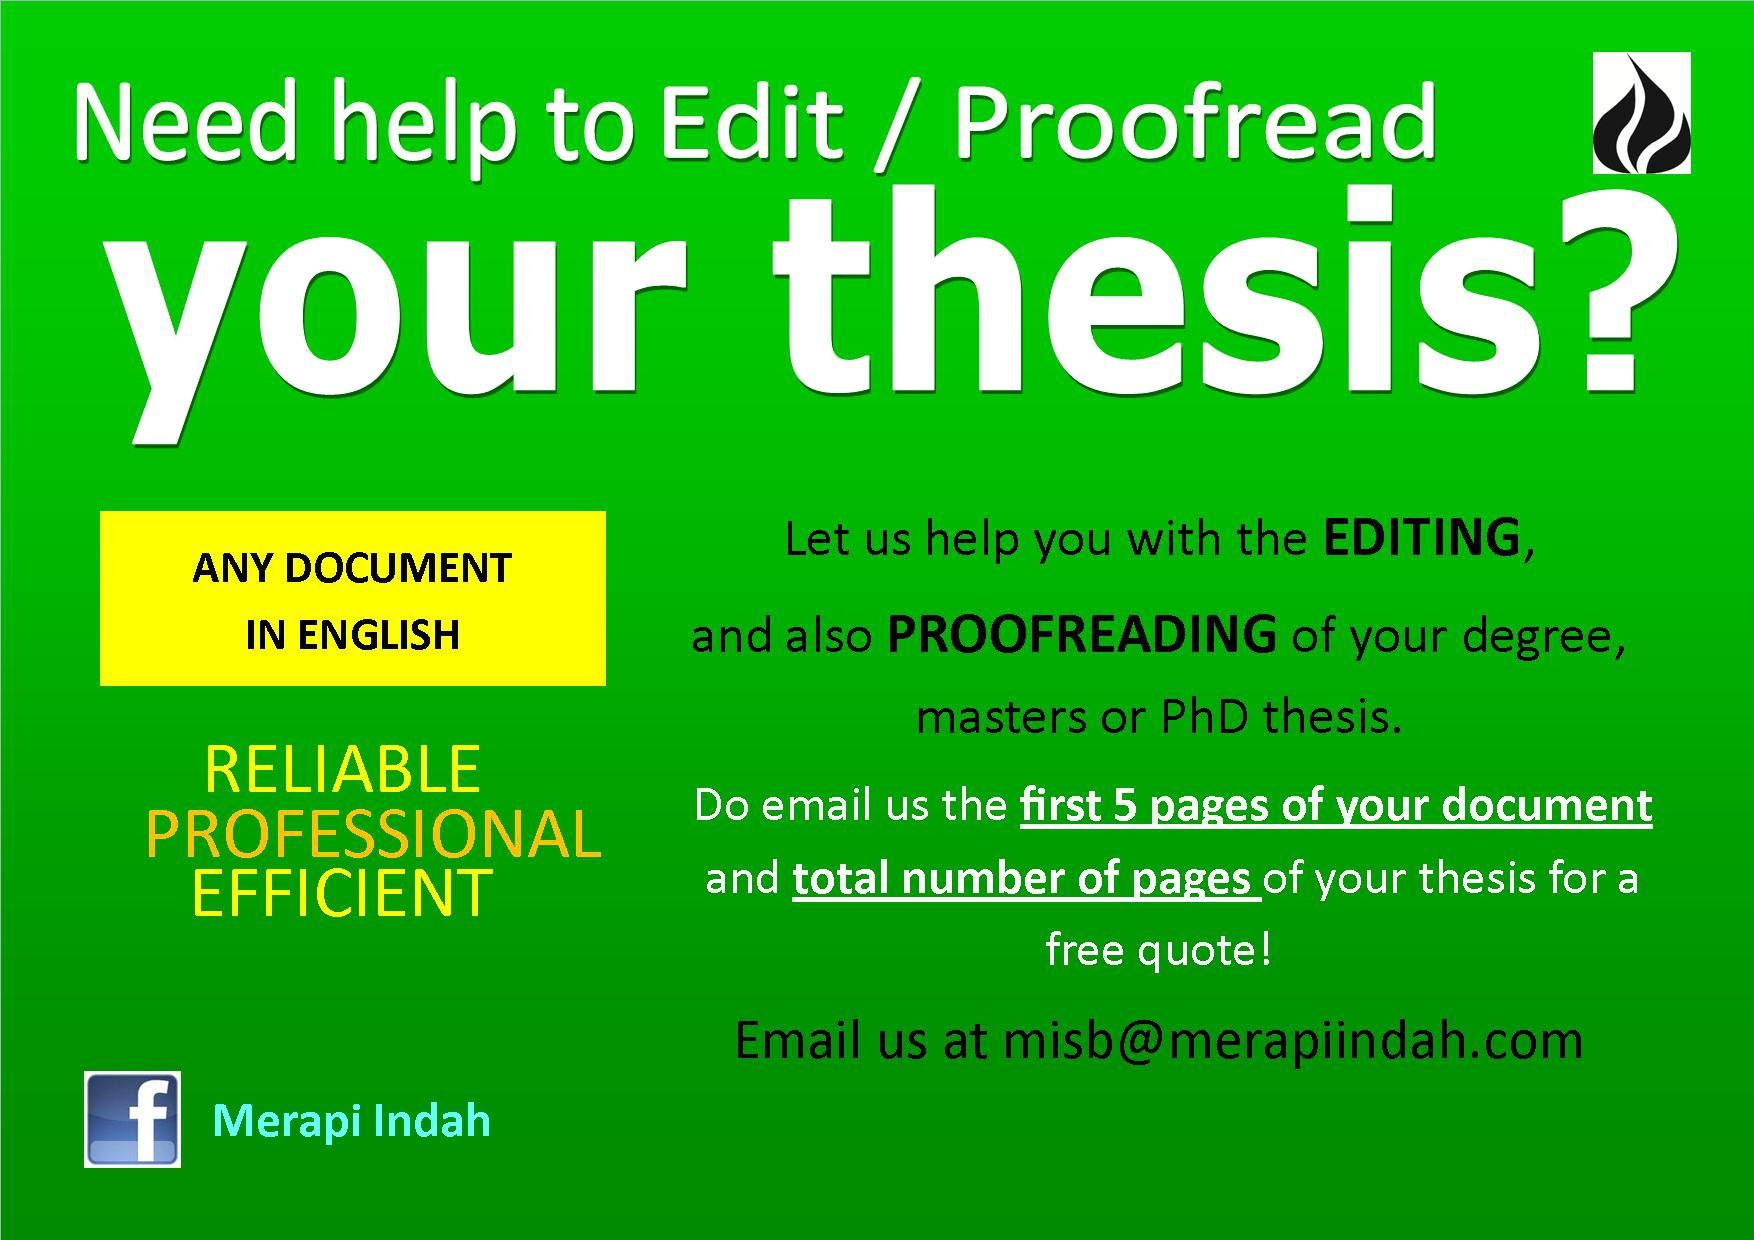 019 Essay Example Editor Misb Editing Proofreading Flyer Thesis Marvelous Service Generator Free Full